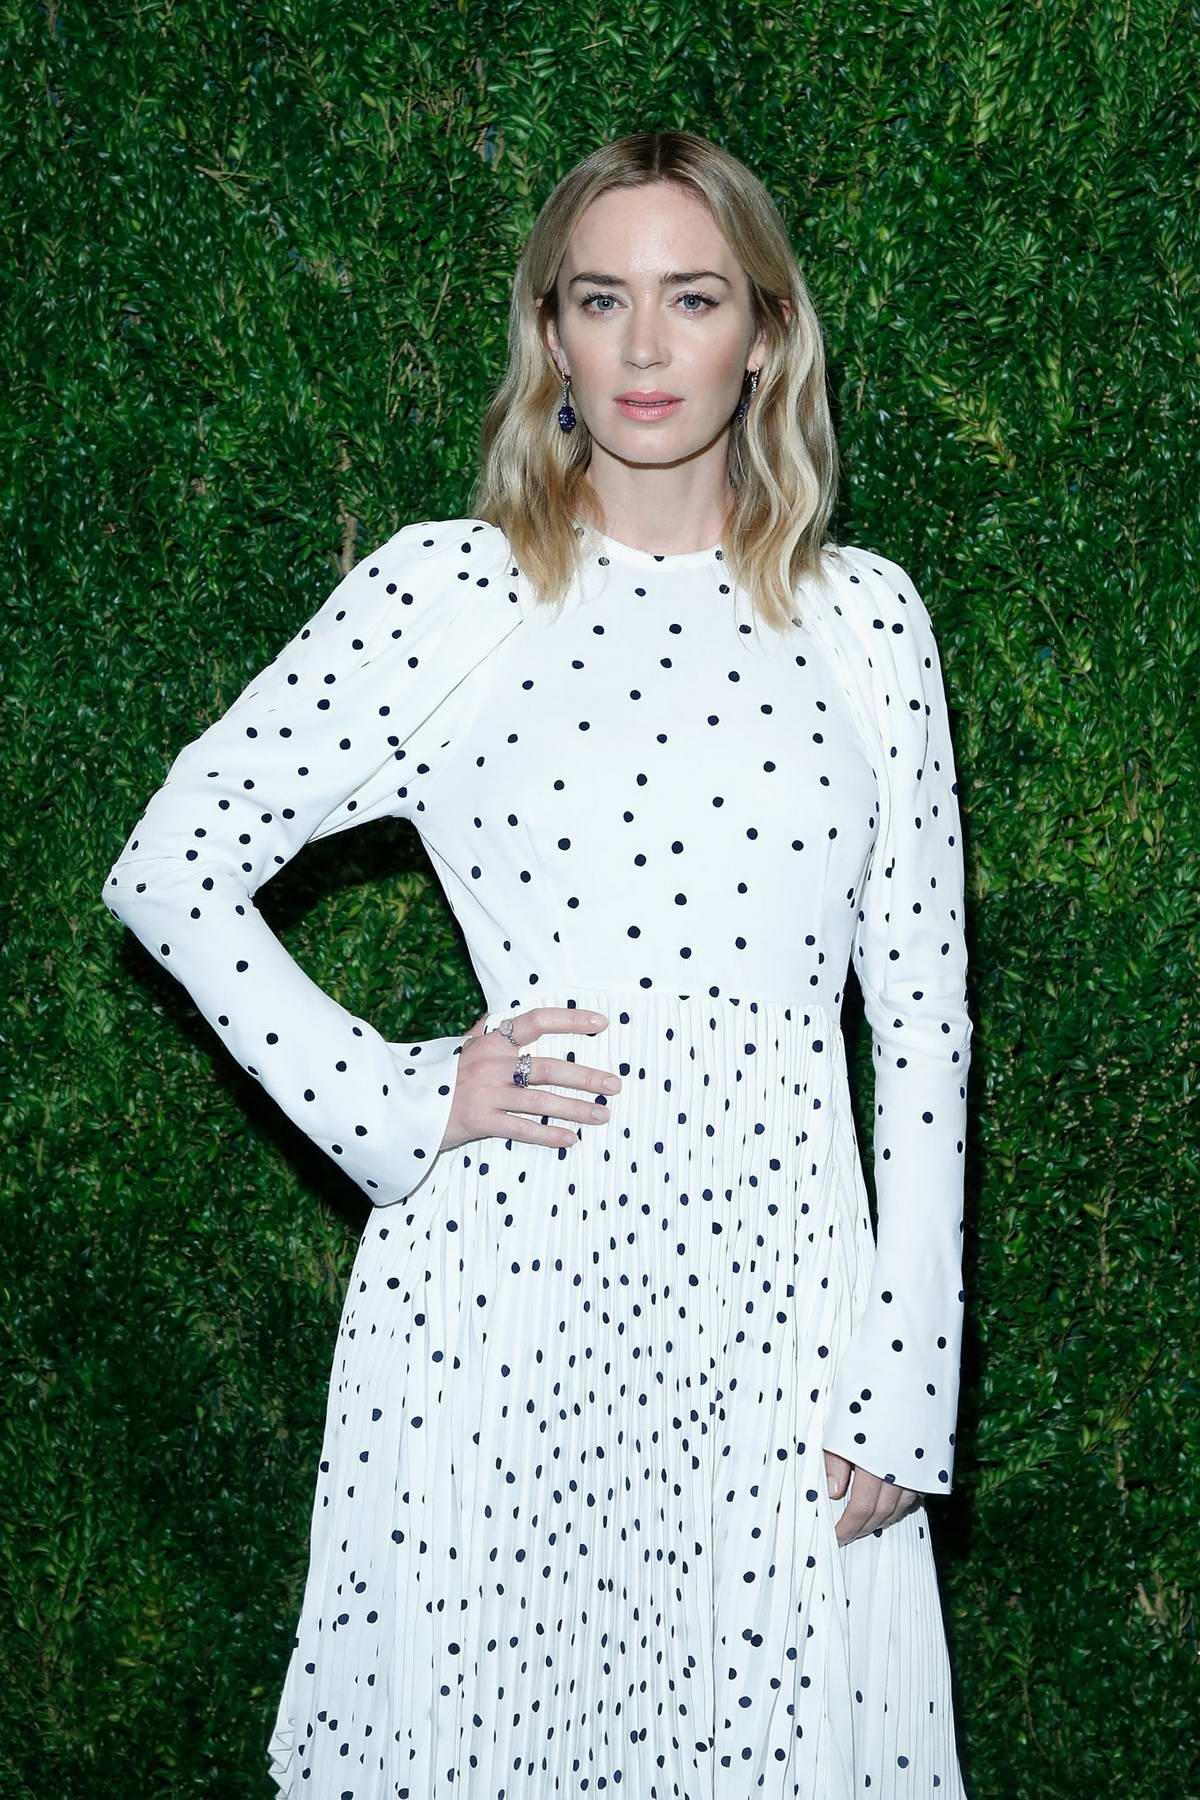 Emily Blunt attends CFDA Vogue Fashion Fund 15th Anniversary Awards in Brooklyn, New York City